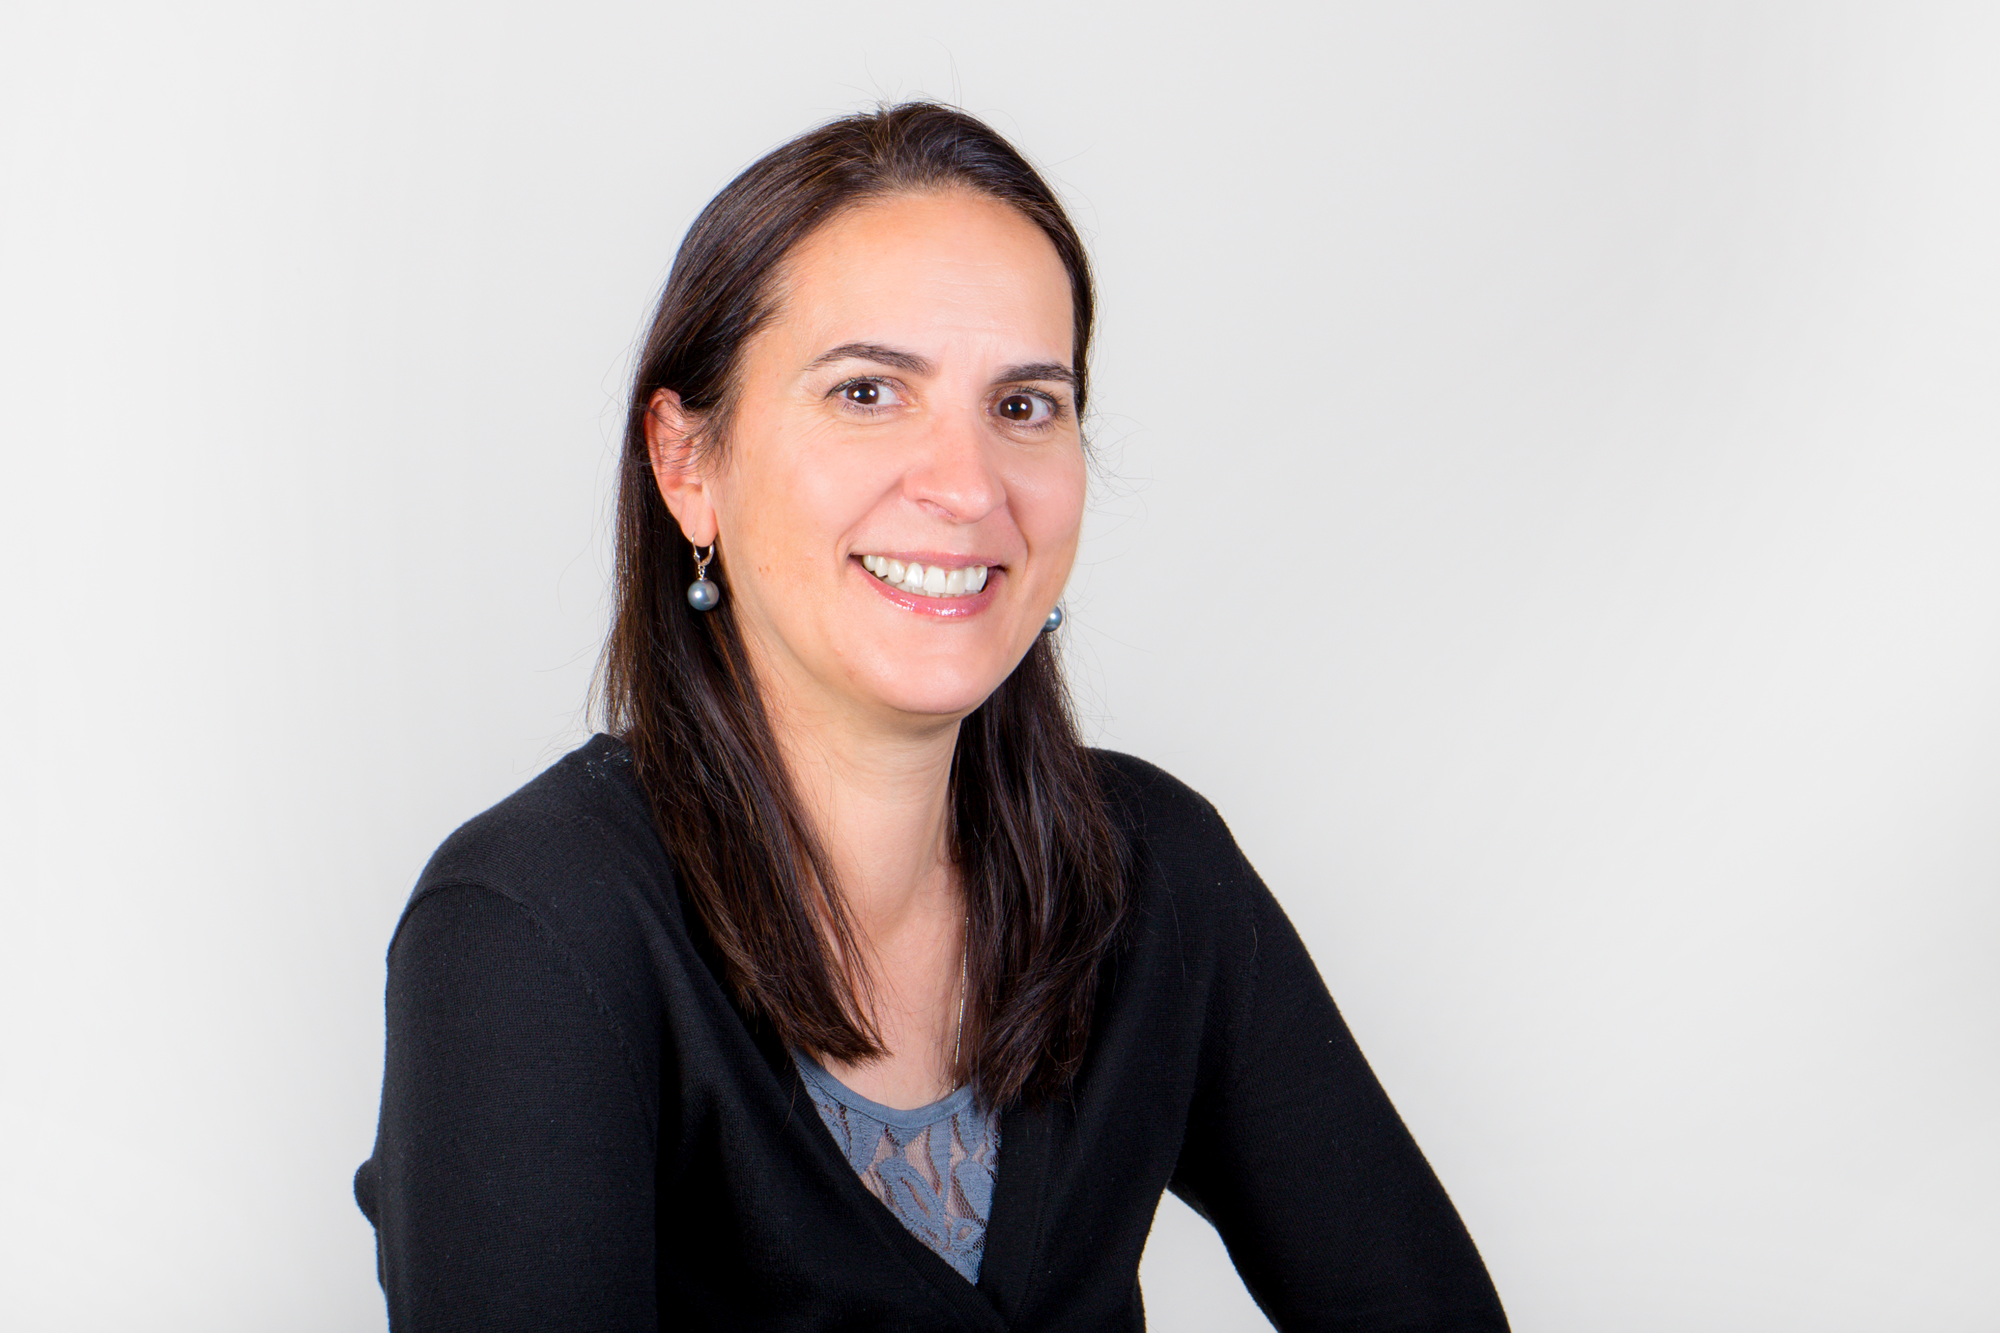 Layusiana Ciobanu, DDS - With a DDS from the University of Tennessee, College of Dentistry, Memphis, Dr. Ciobanu has studied in Europe and the United States. She provides comprehensive dentistry with advanced training in restorative dentistry.